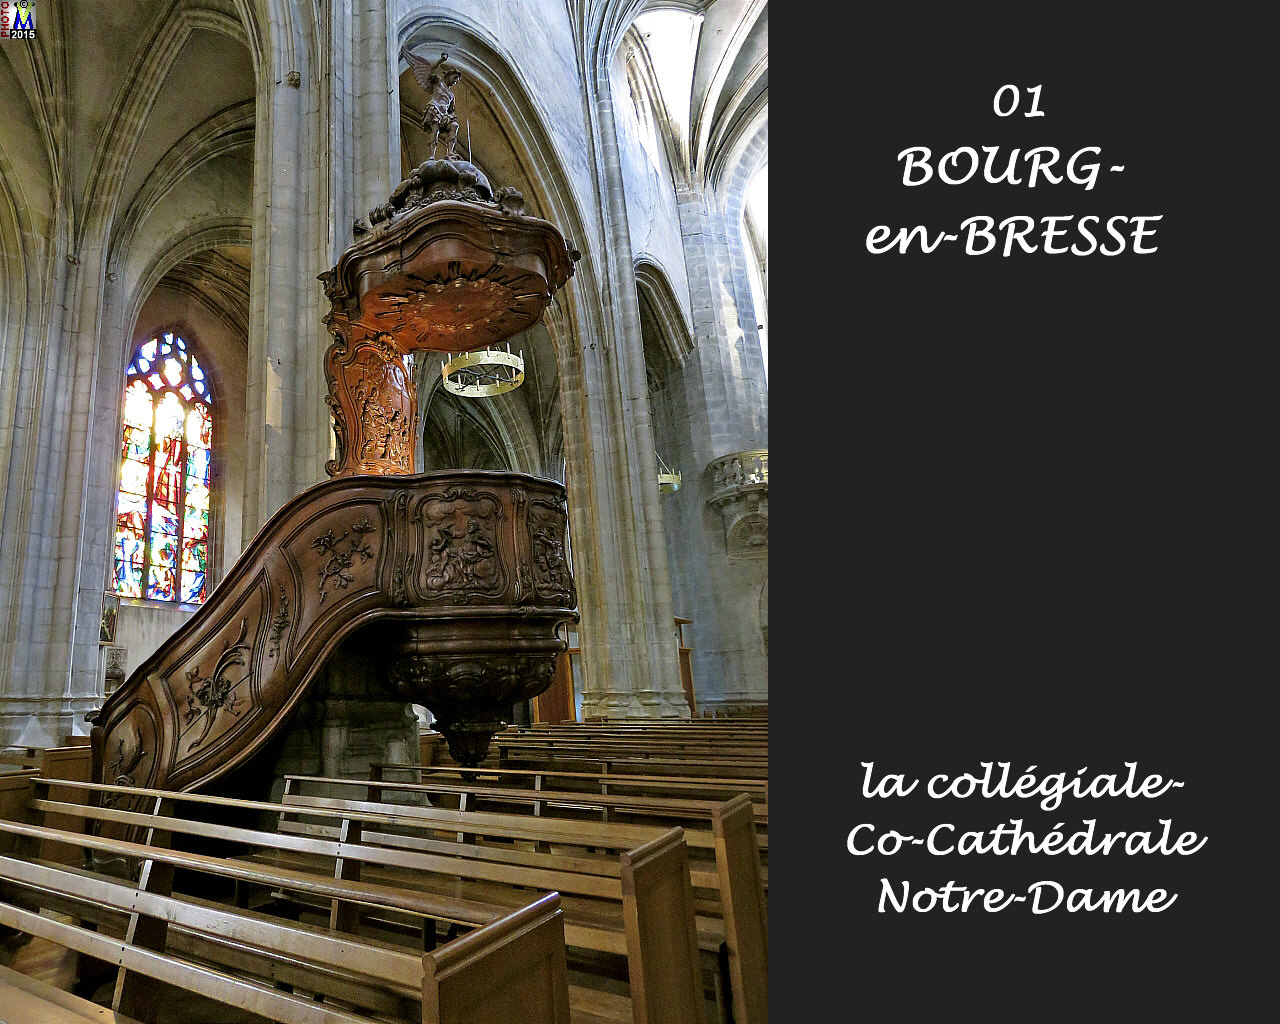 01BOURG-BRESSE_cathedrale_290.jpg